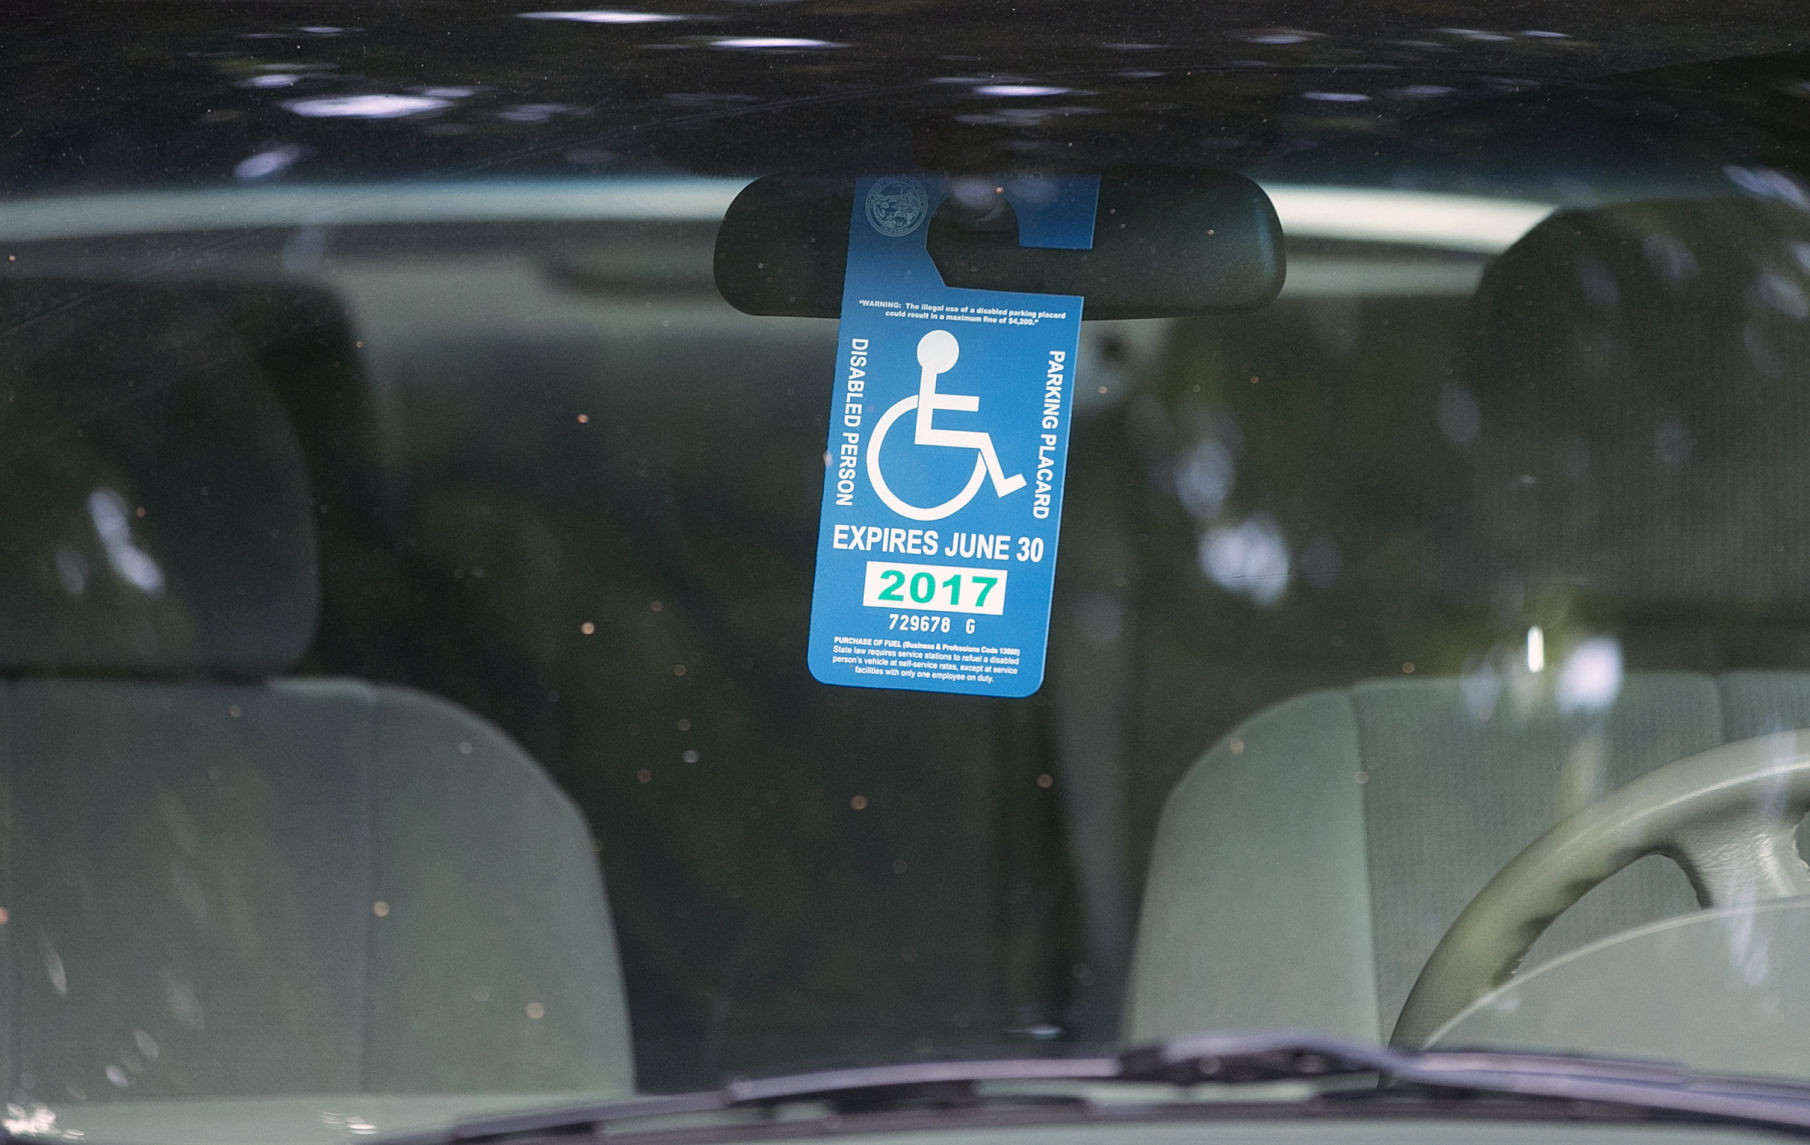 DMV cracking down on fraudulent use of disabled parking placards ...